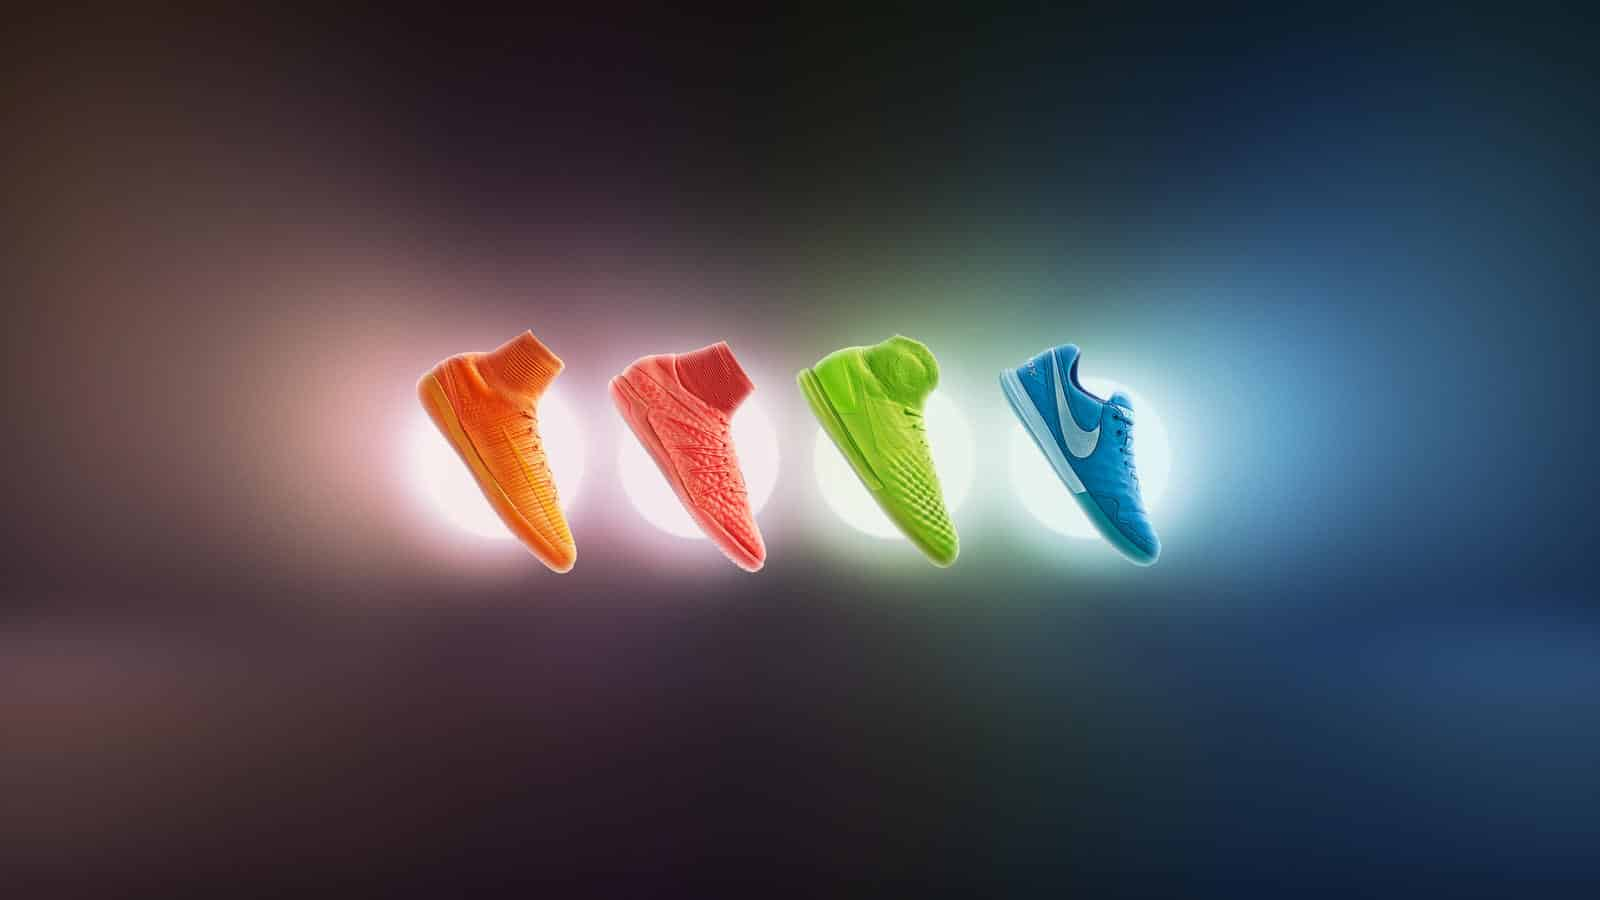 chaussure-foot-nike-football-pack-floodlight-glow-fluorescent-2016